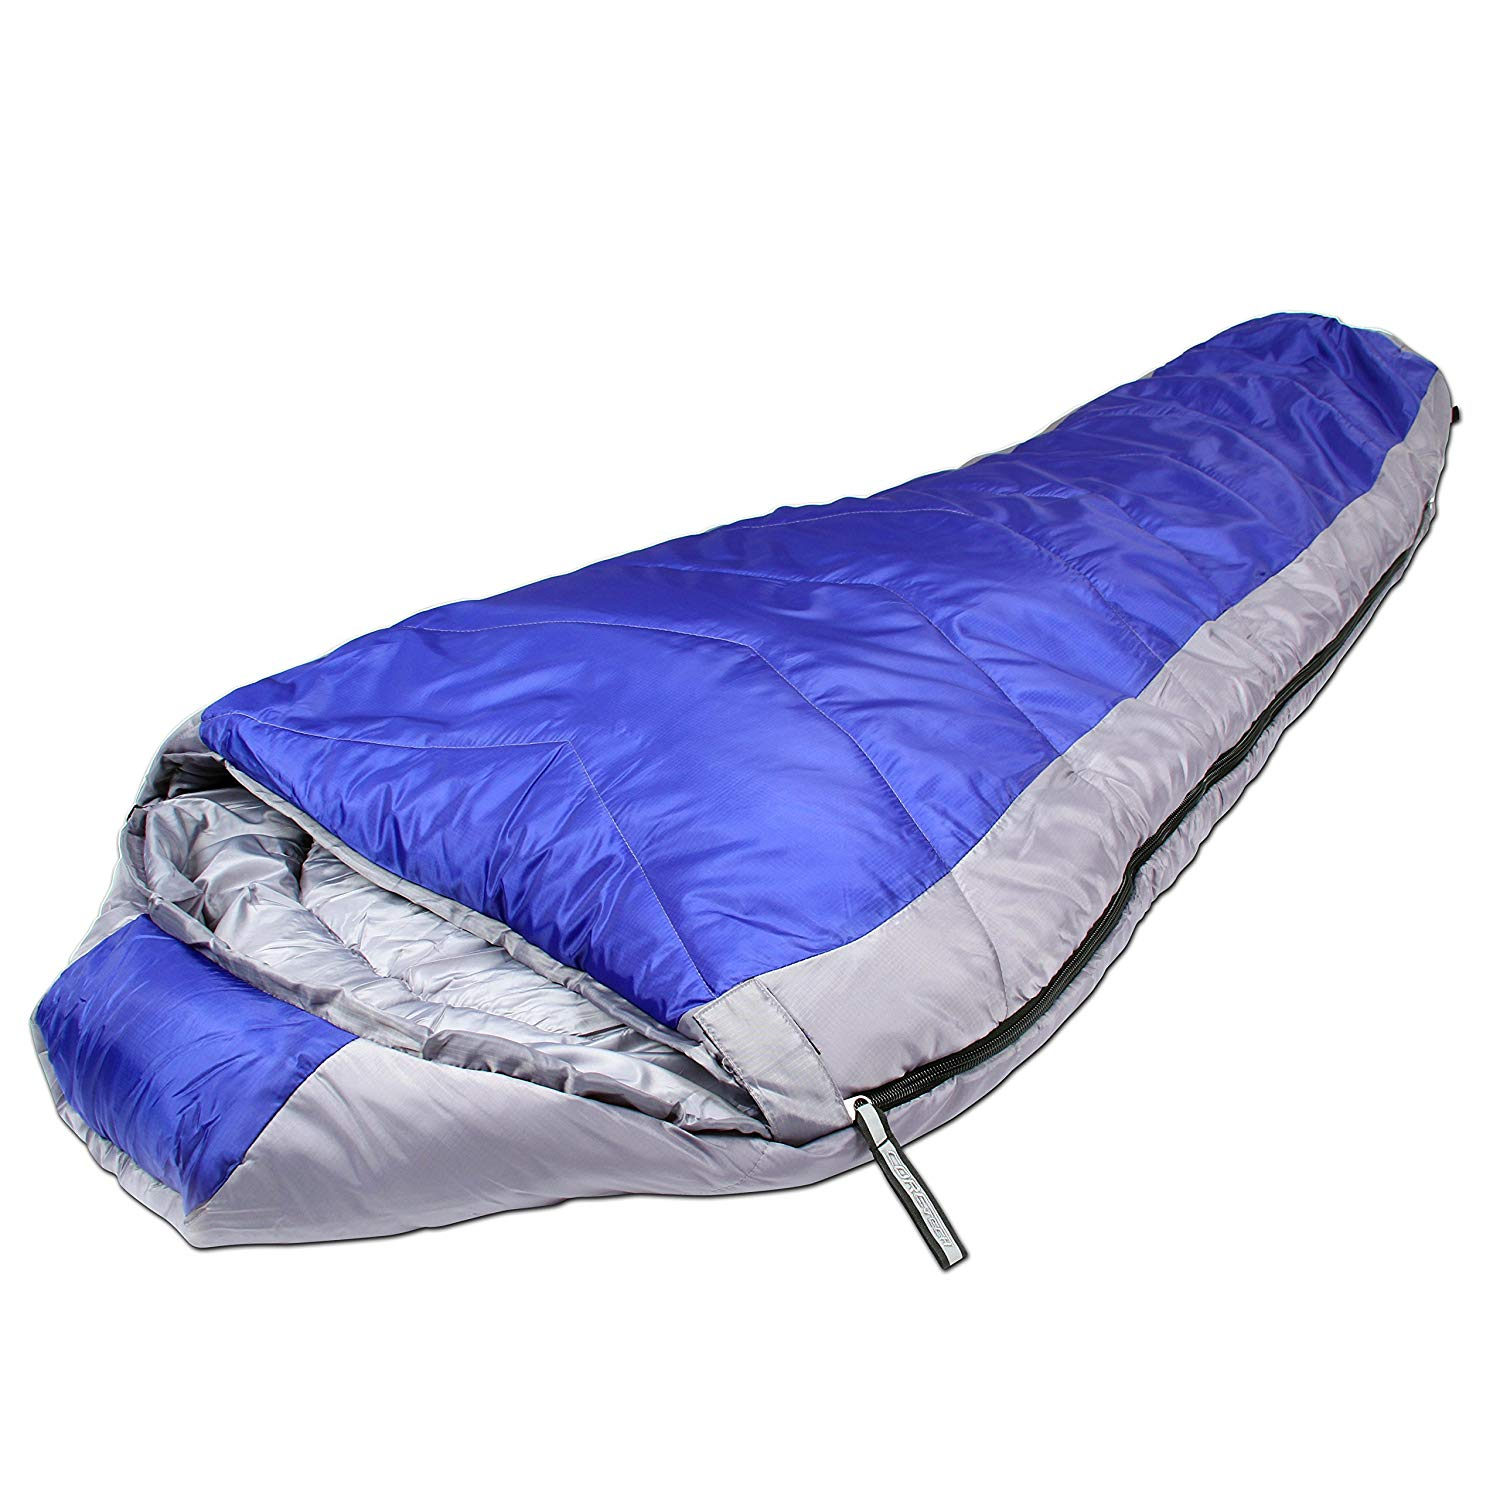 Northstar Tactical Coretech Sleeping Bag, Blue, Best Backpacking Sleeping Bags under 100